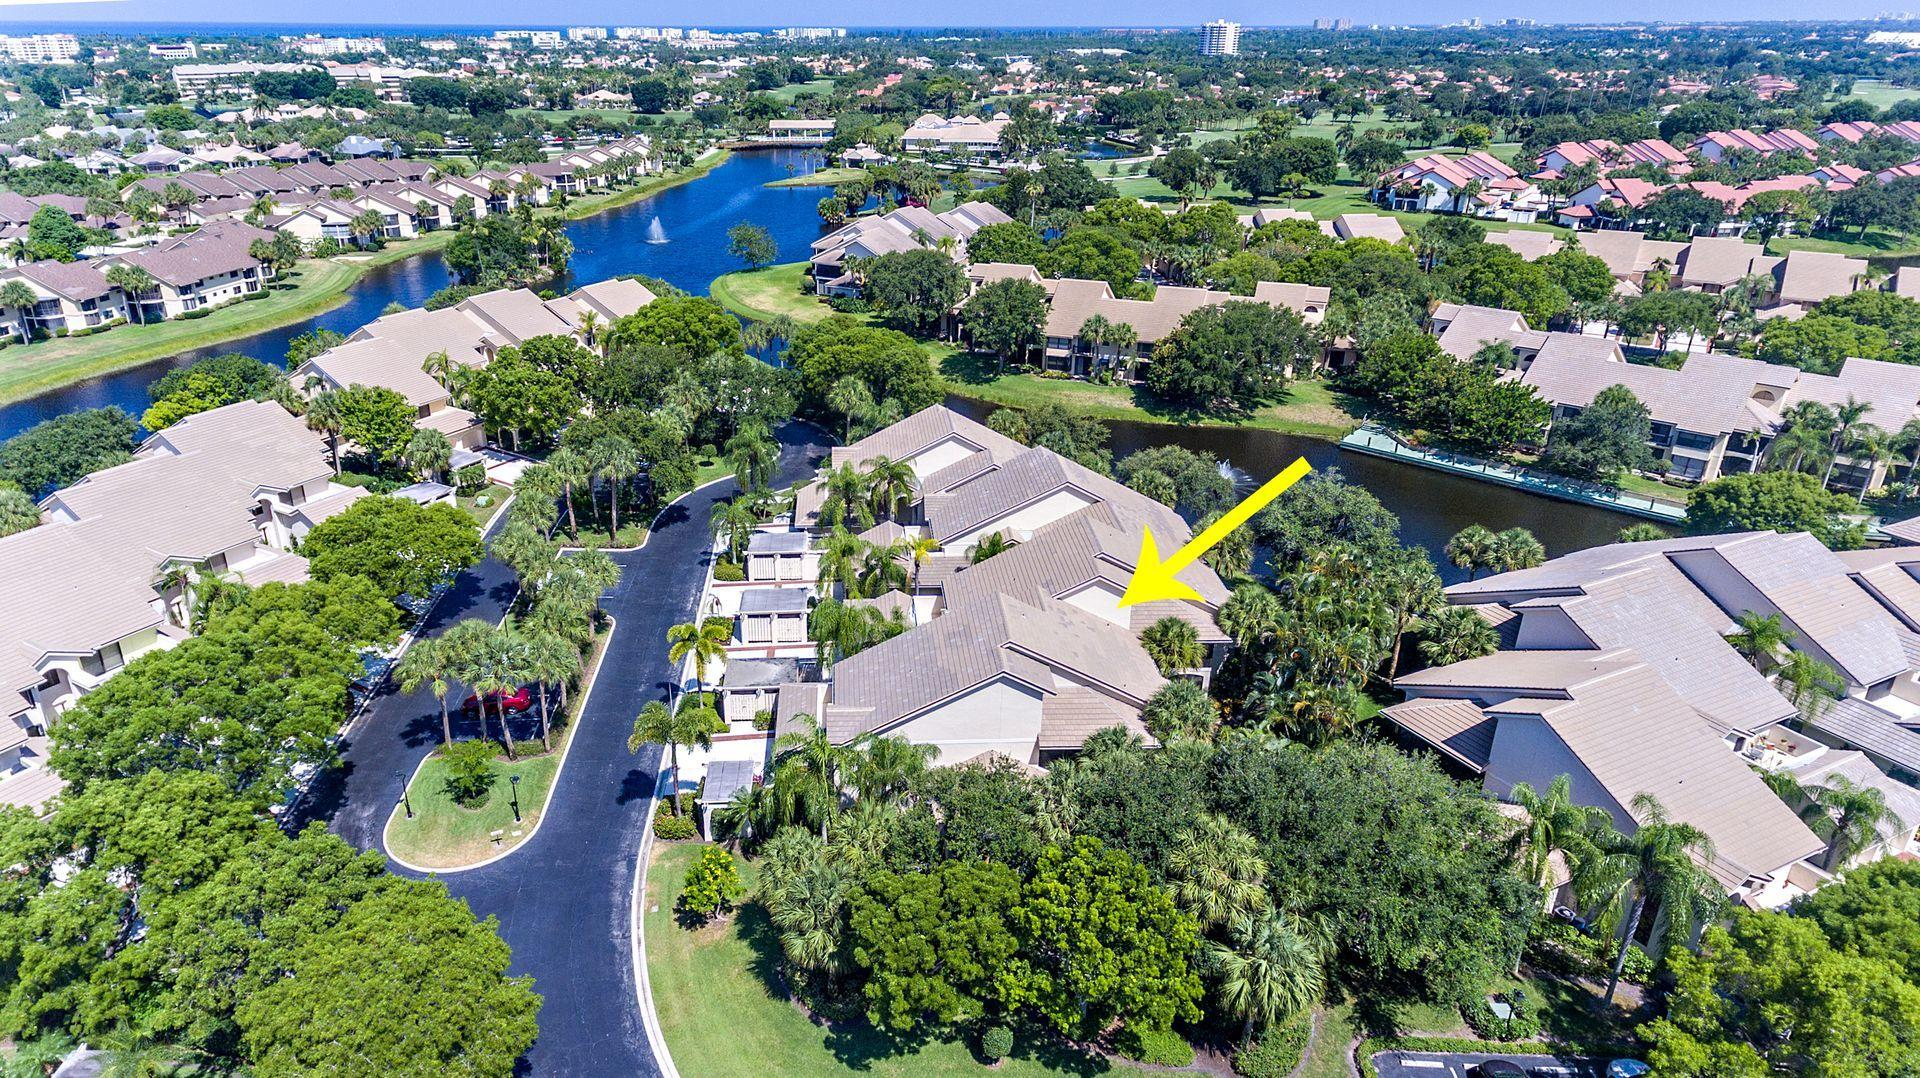 3940 Schooner Pointe Drive 212, Jupiter, Florida 33477, 3 Bedrooms Bedrooms, ,2 BathroomsBathrooms,A,Condominium,Schooner Pointe,RX-10536471